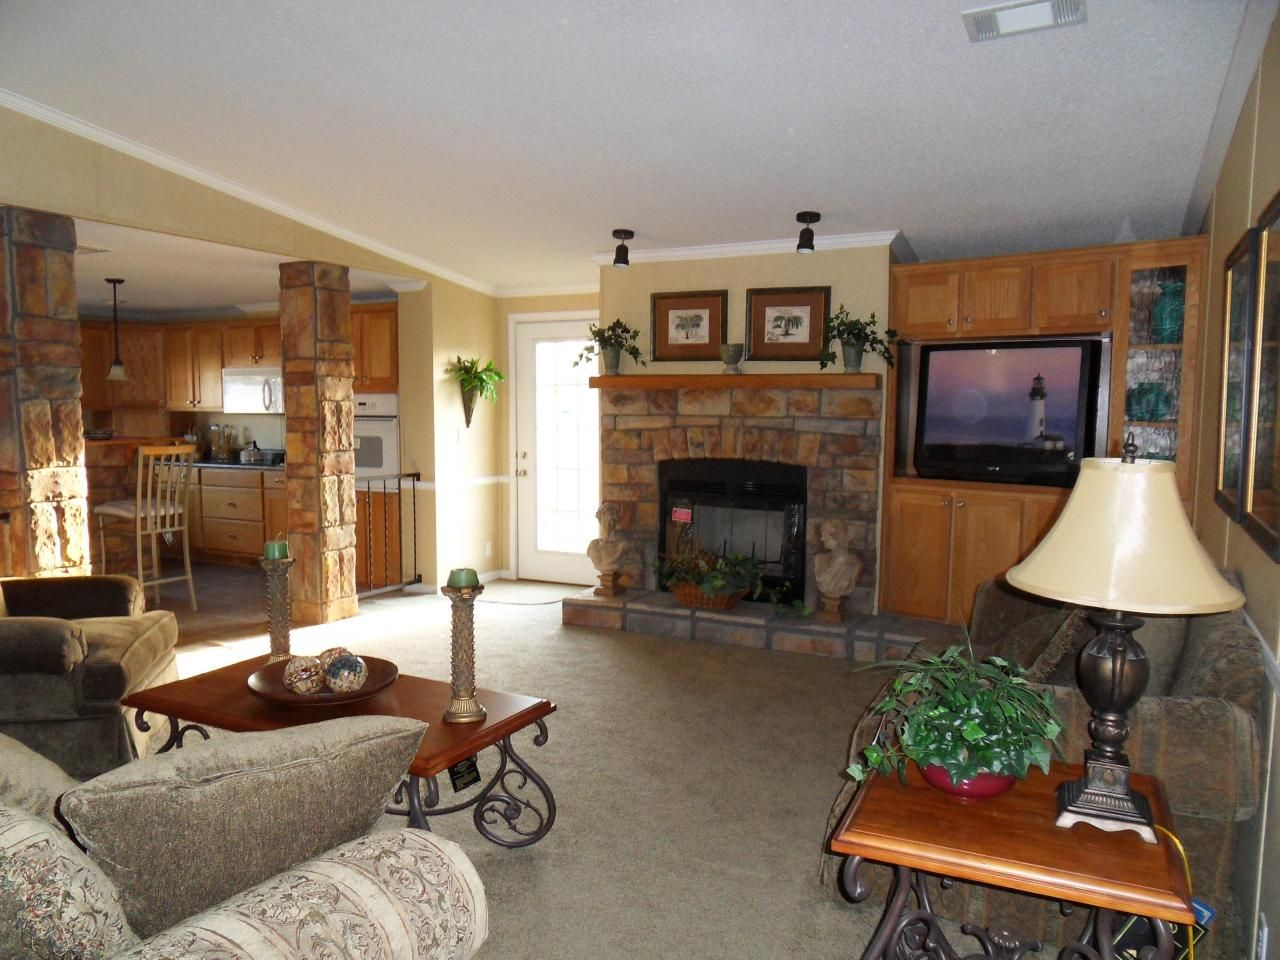 Double Wide Mobile Homes Interior 2135 Square Feet 64 700 Kitchen Pinterest Square Feet